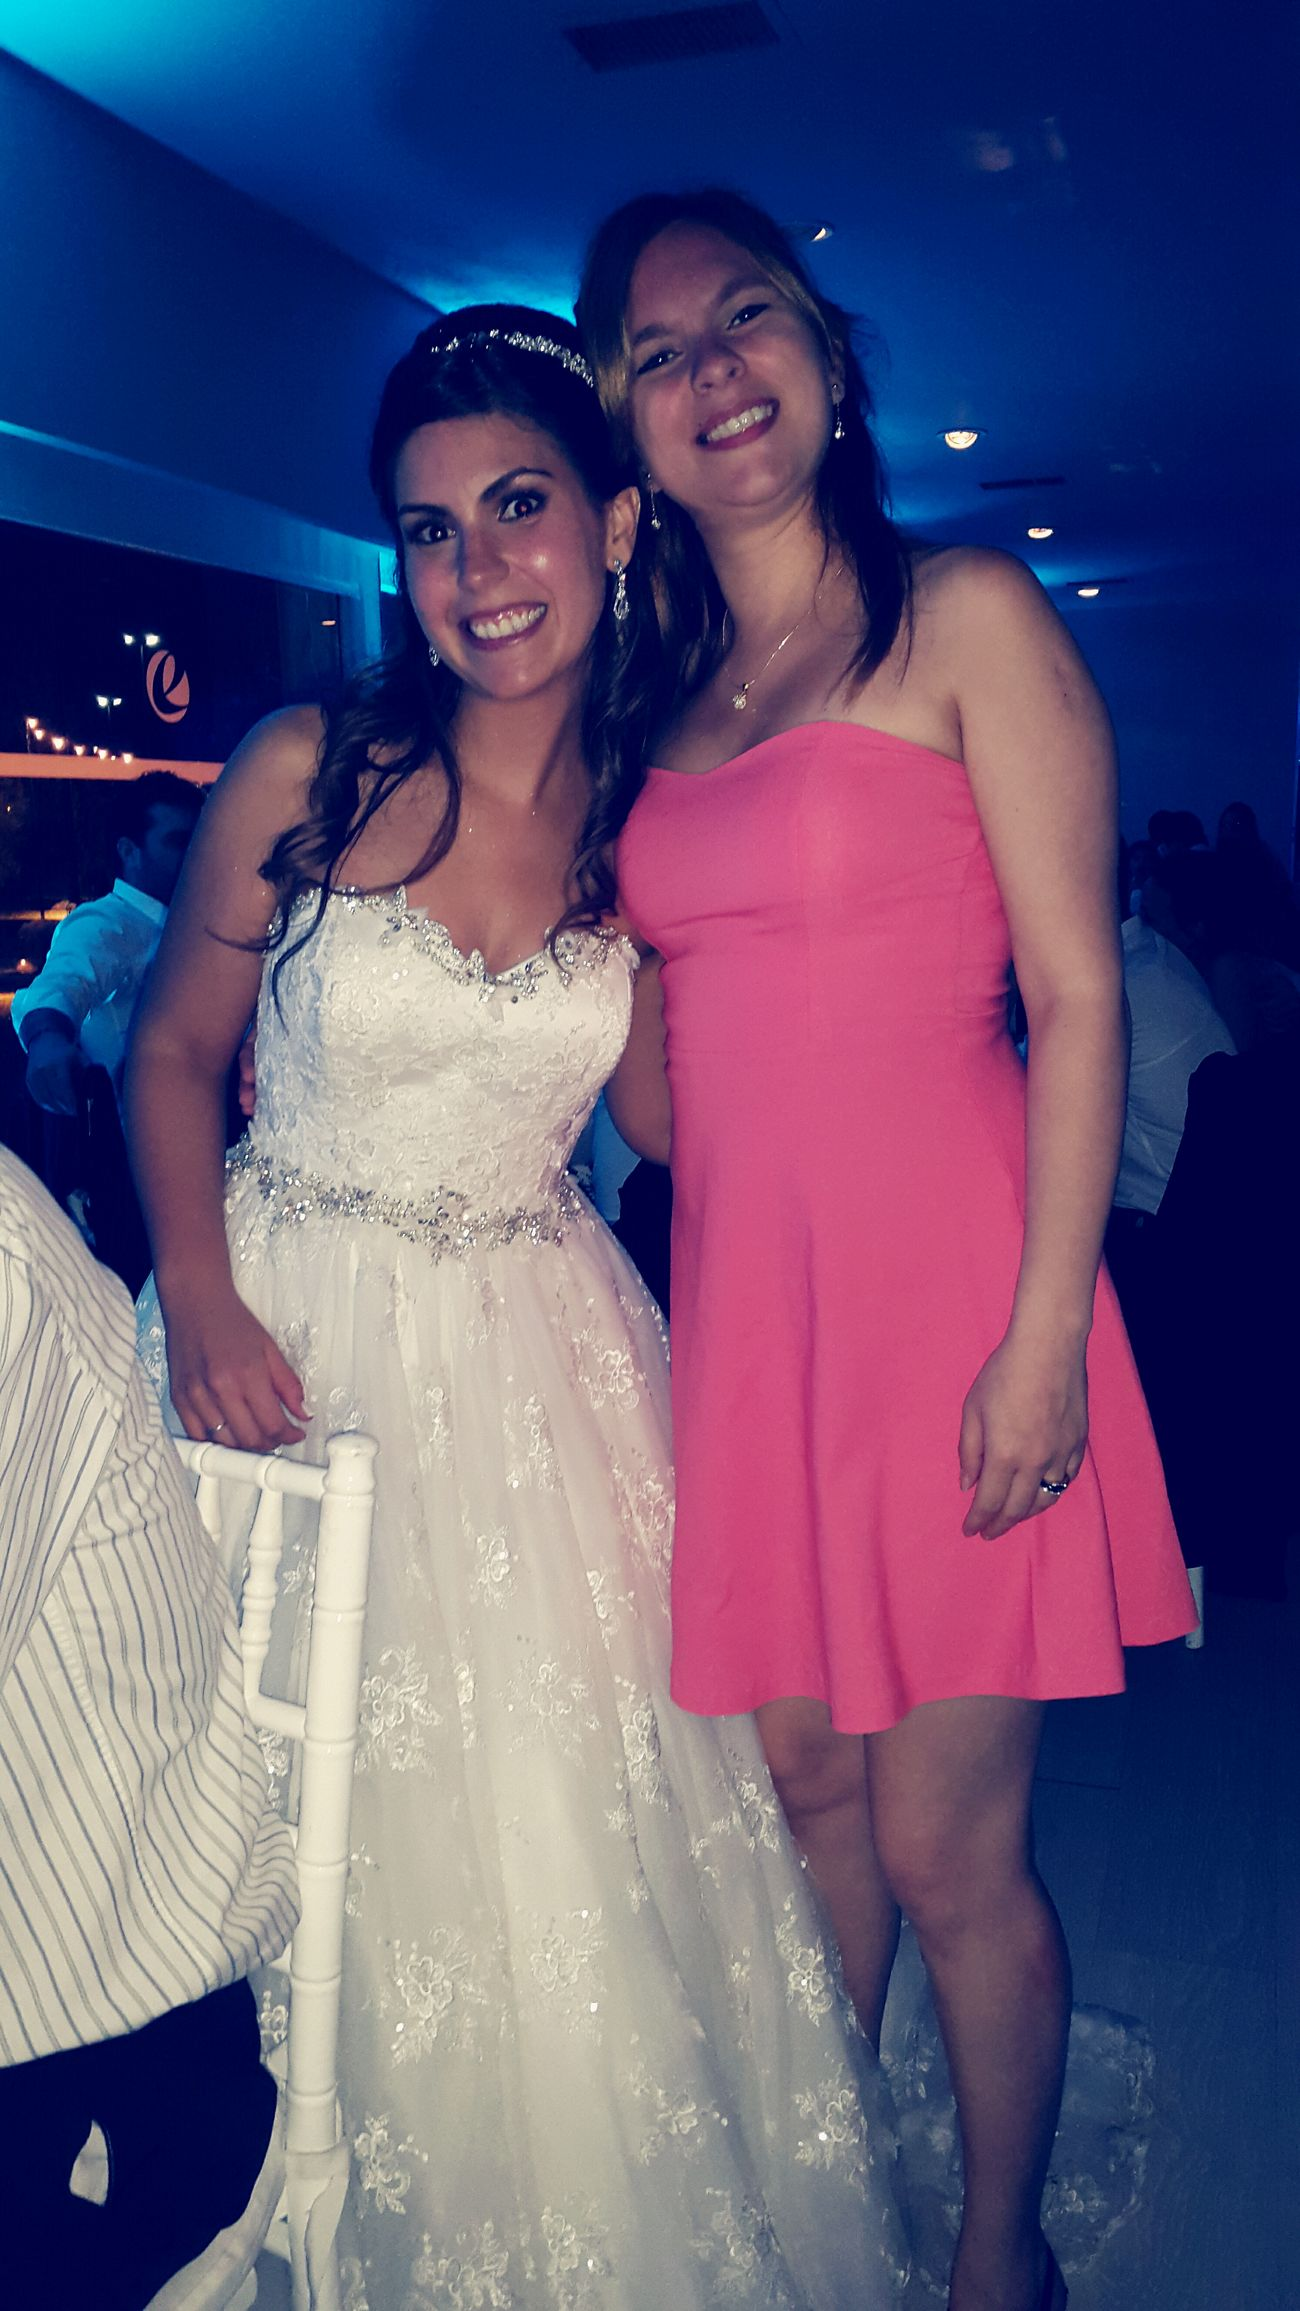 With the must Beautiful Bride !!! Amazing Night Celebrating Love! I Love My Friend!!